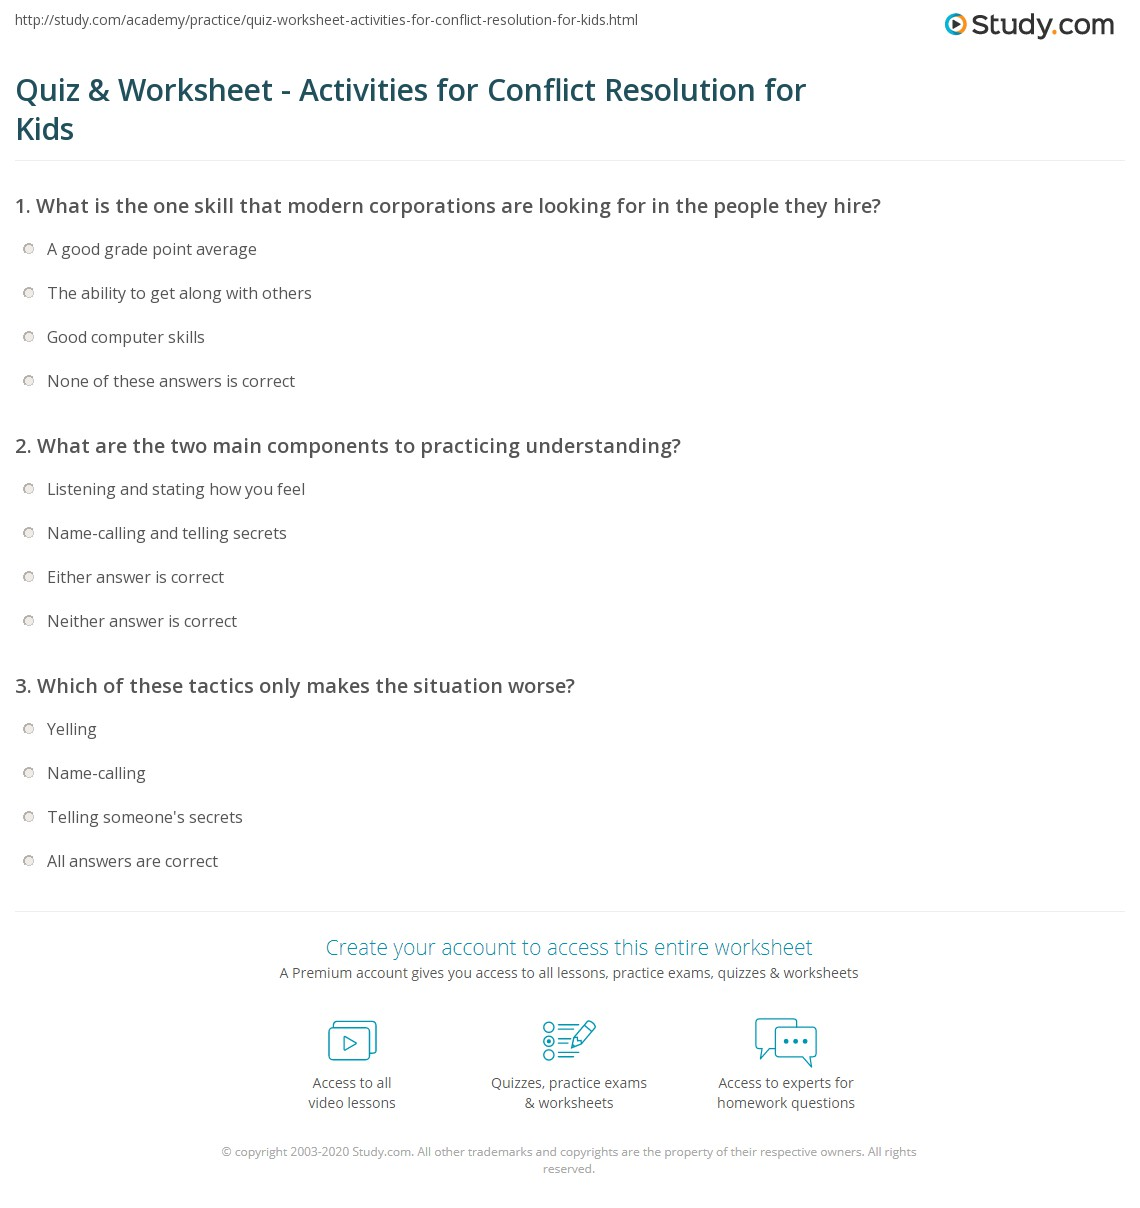 Worksheets Conflict Resolution Worksheets For Kids quiz worksheet activities for conflict resolution kids print worksheet